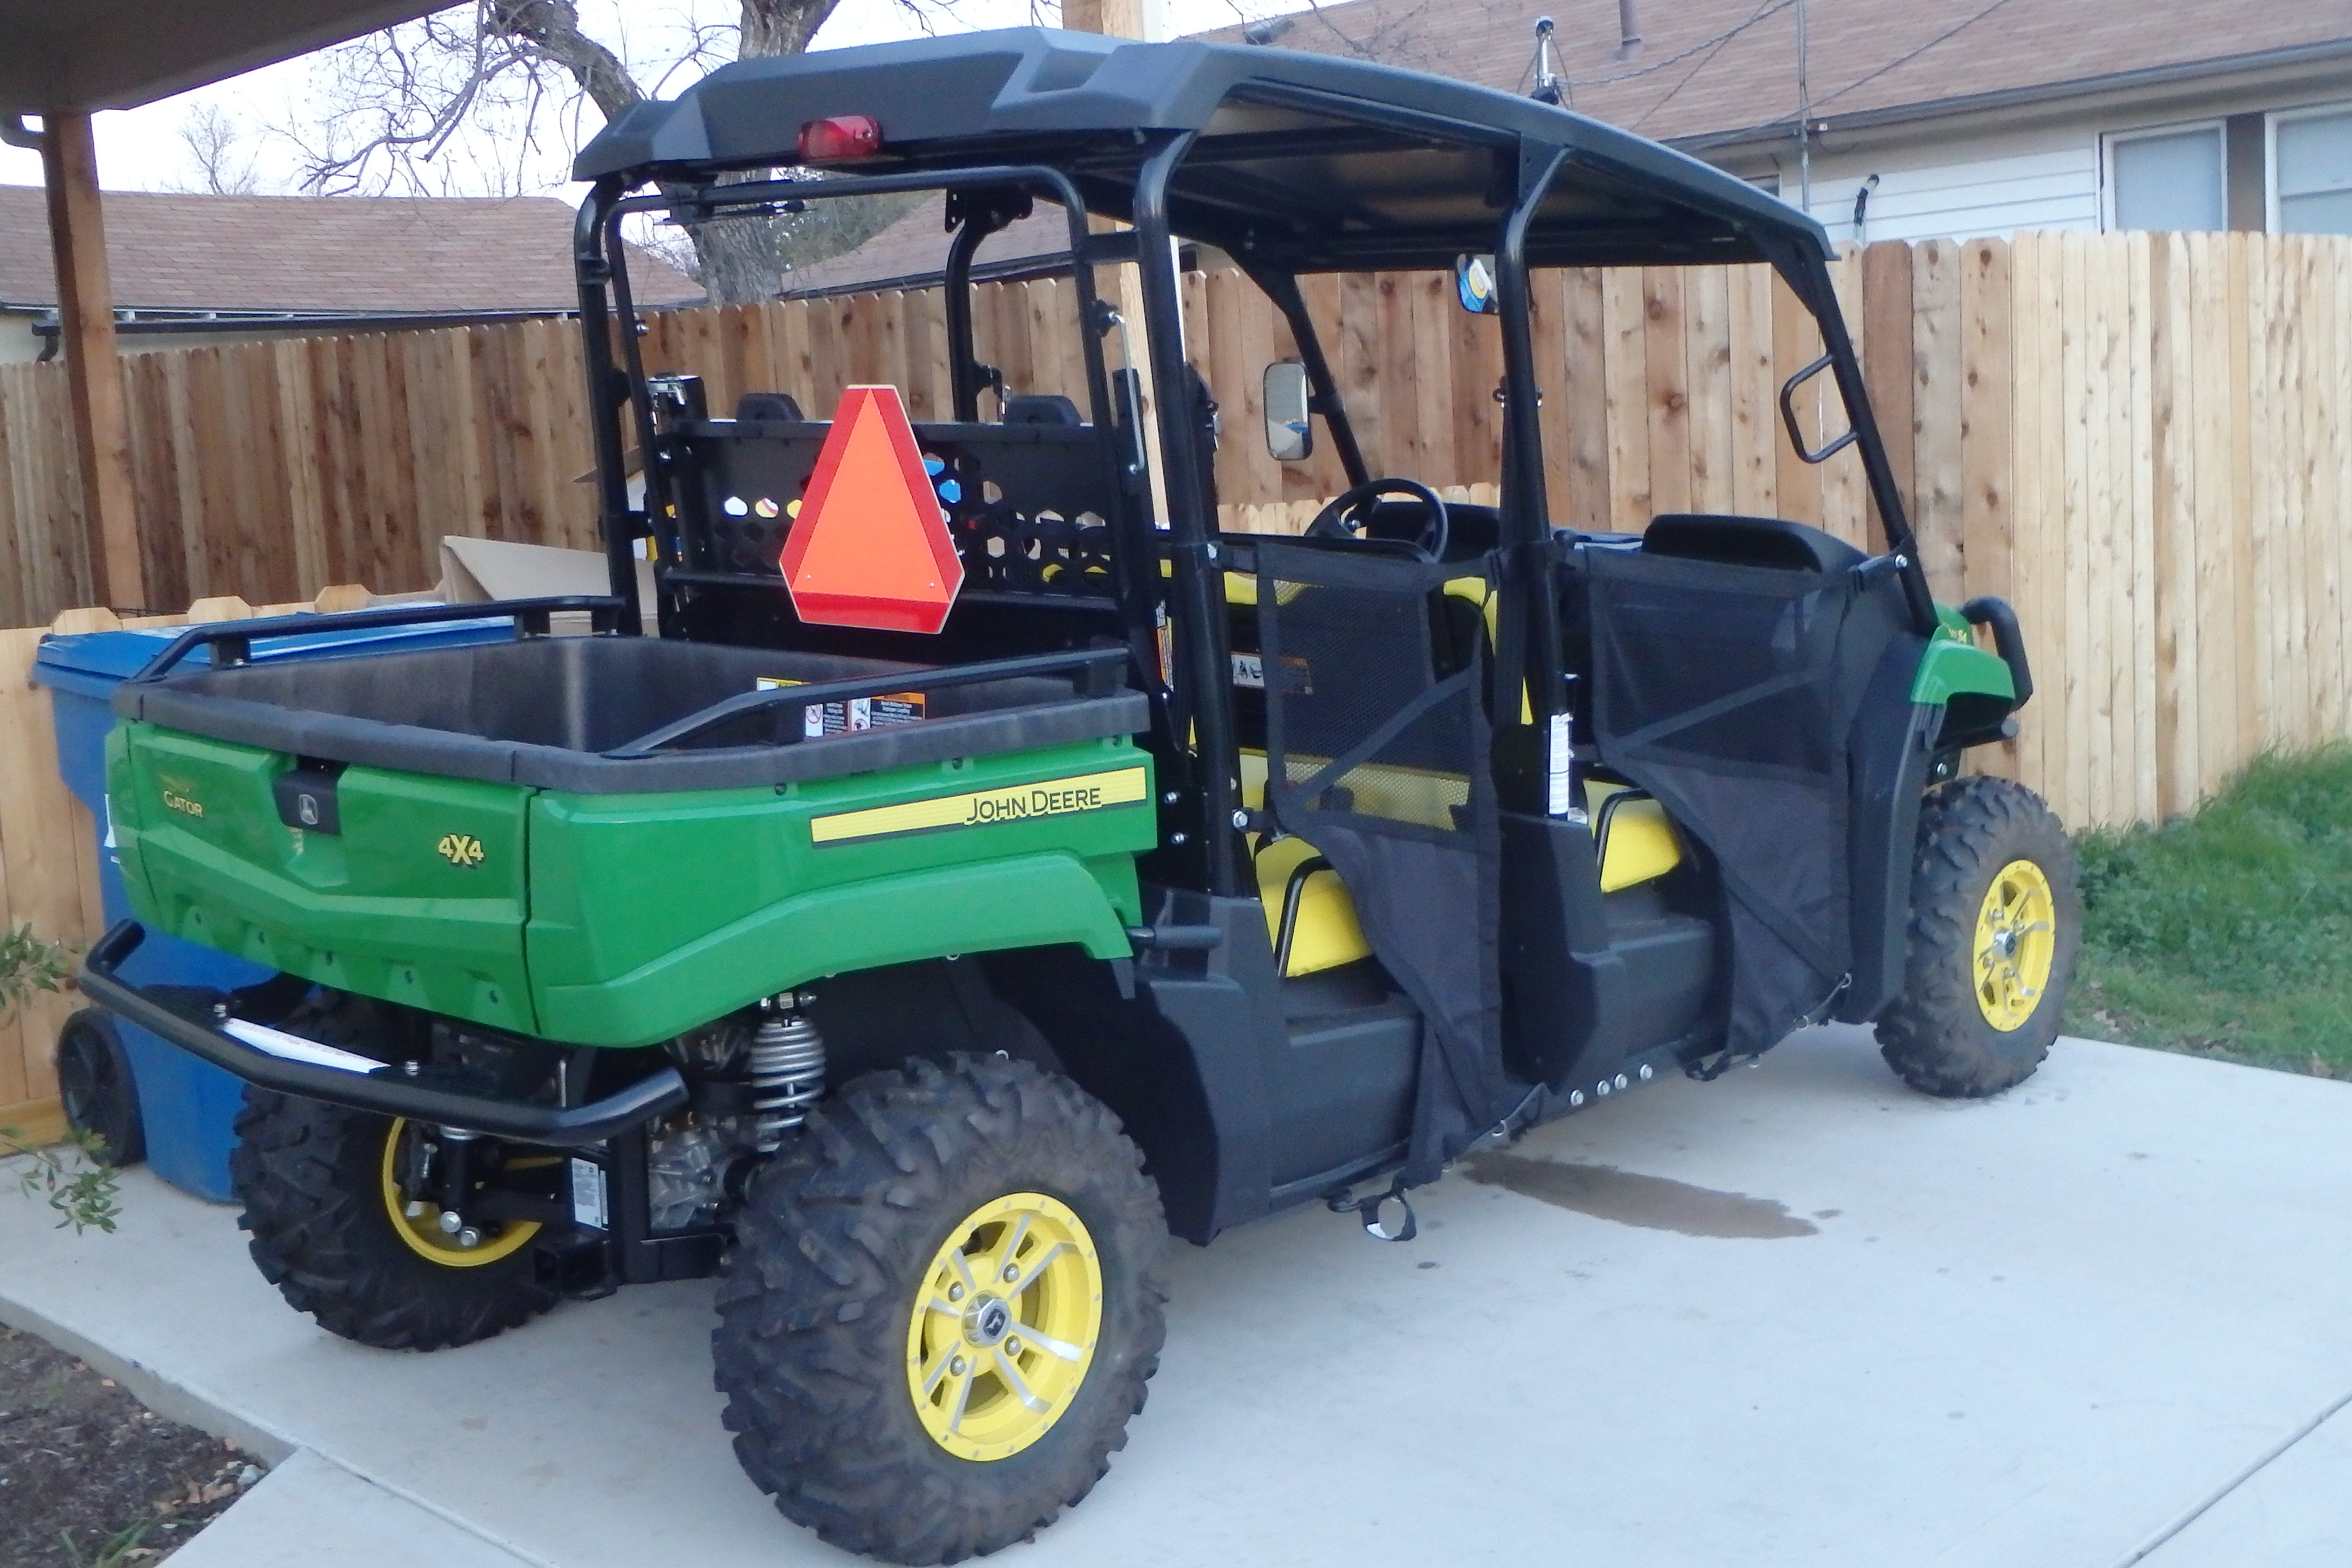 XUV550 s4 Texas Street Legal Conversion John Deere Gator Forums